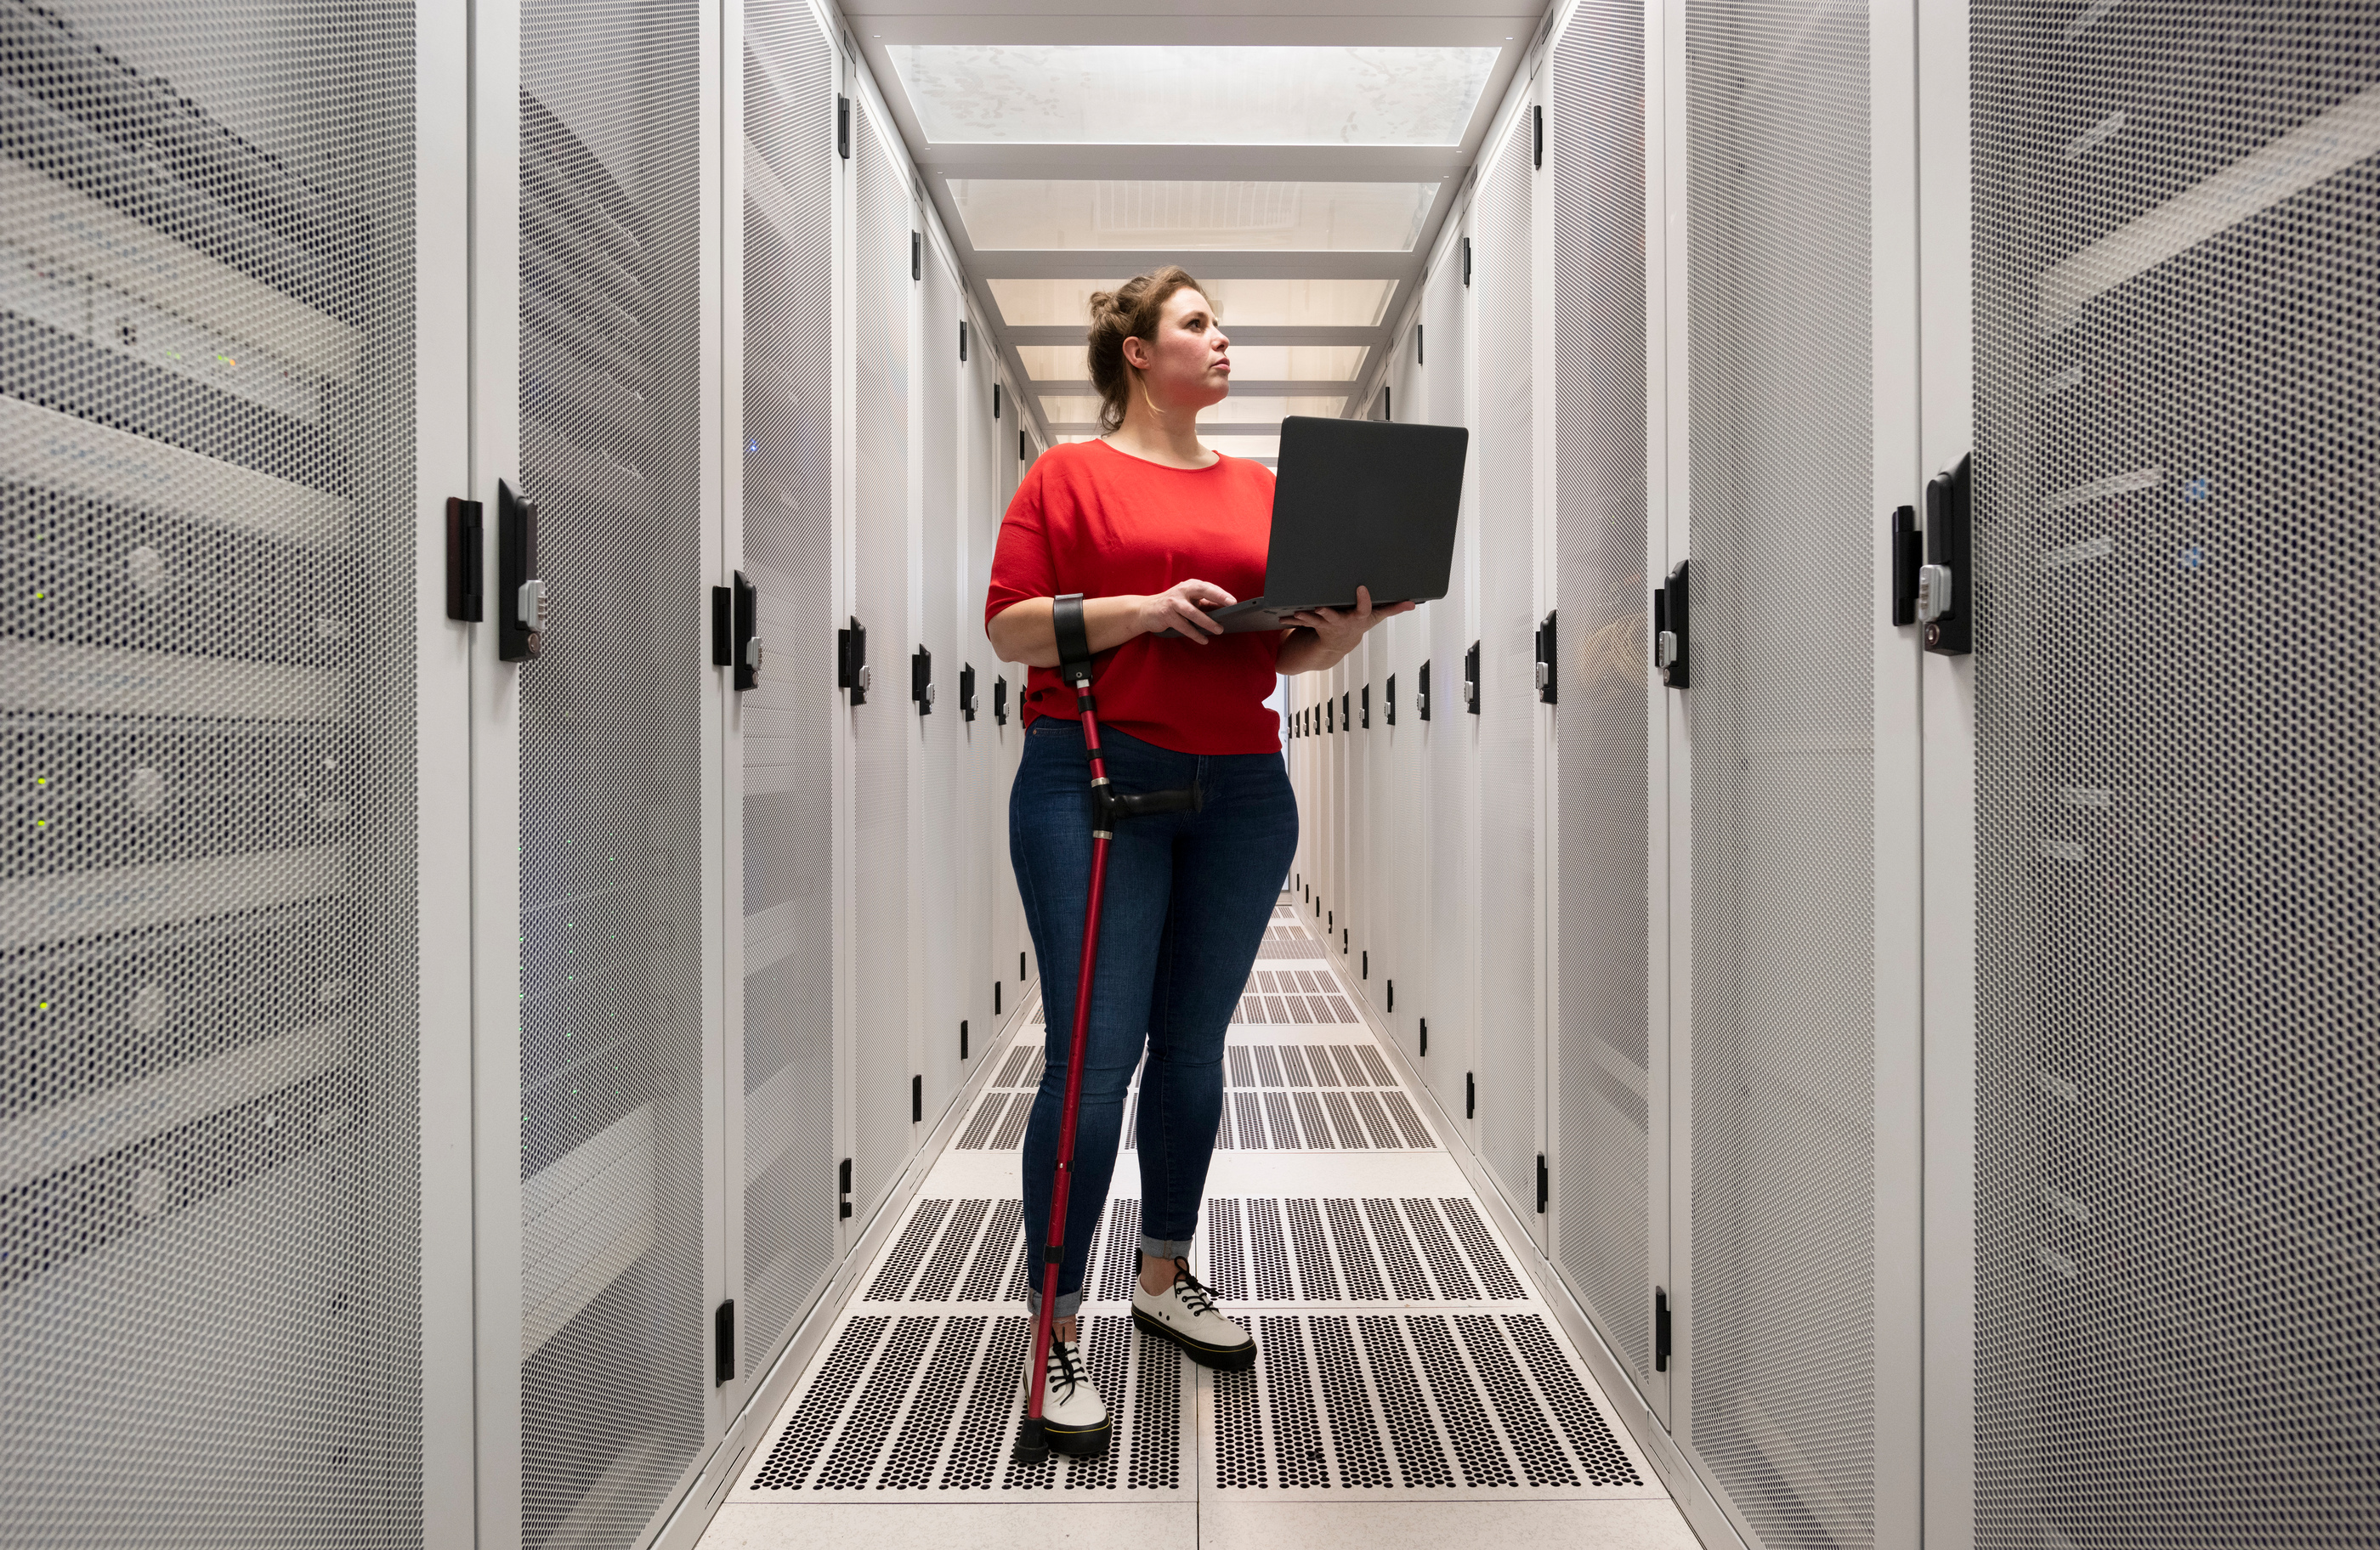 women-with-red-shirt-standing-in-a-server-hall.jpg